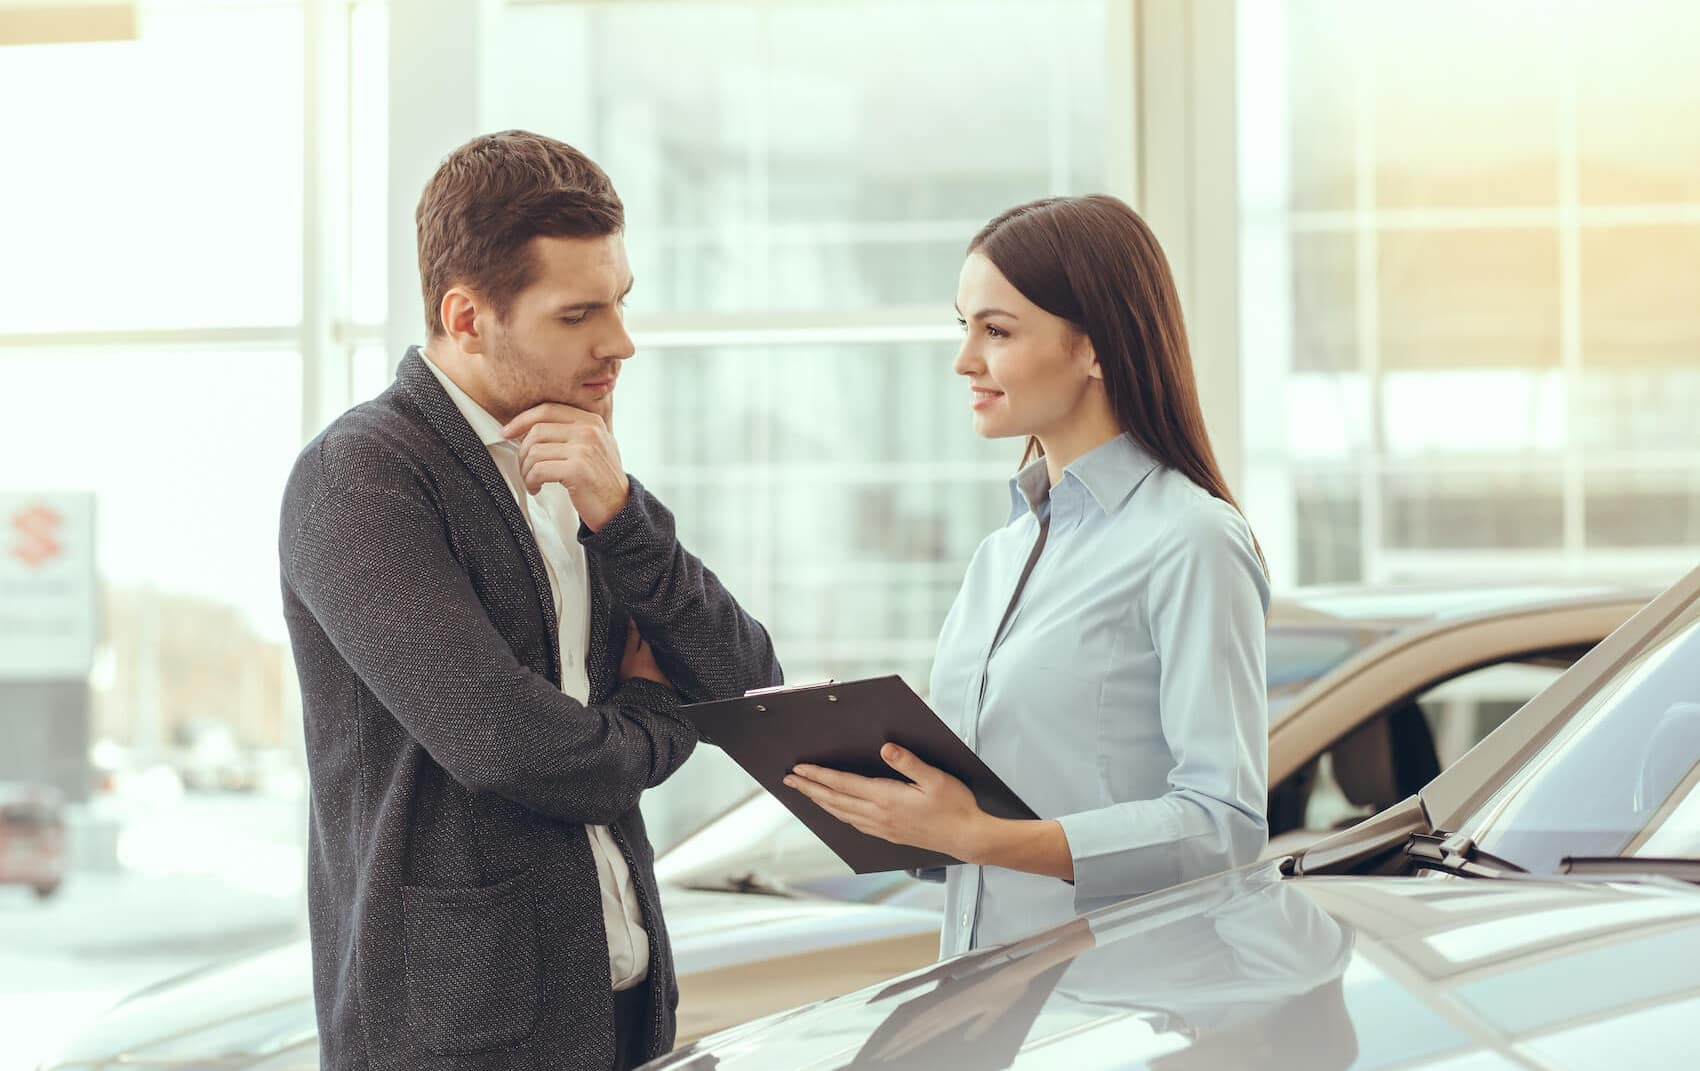 Financing at Our Used Car Dealer near Camp Hill